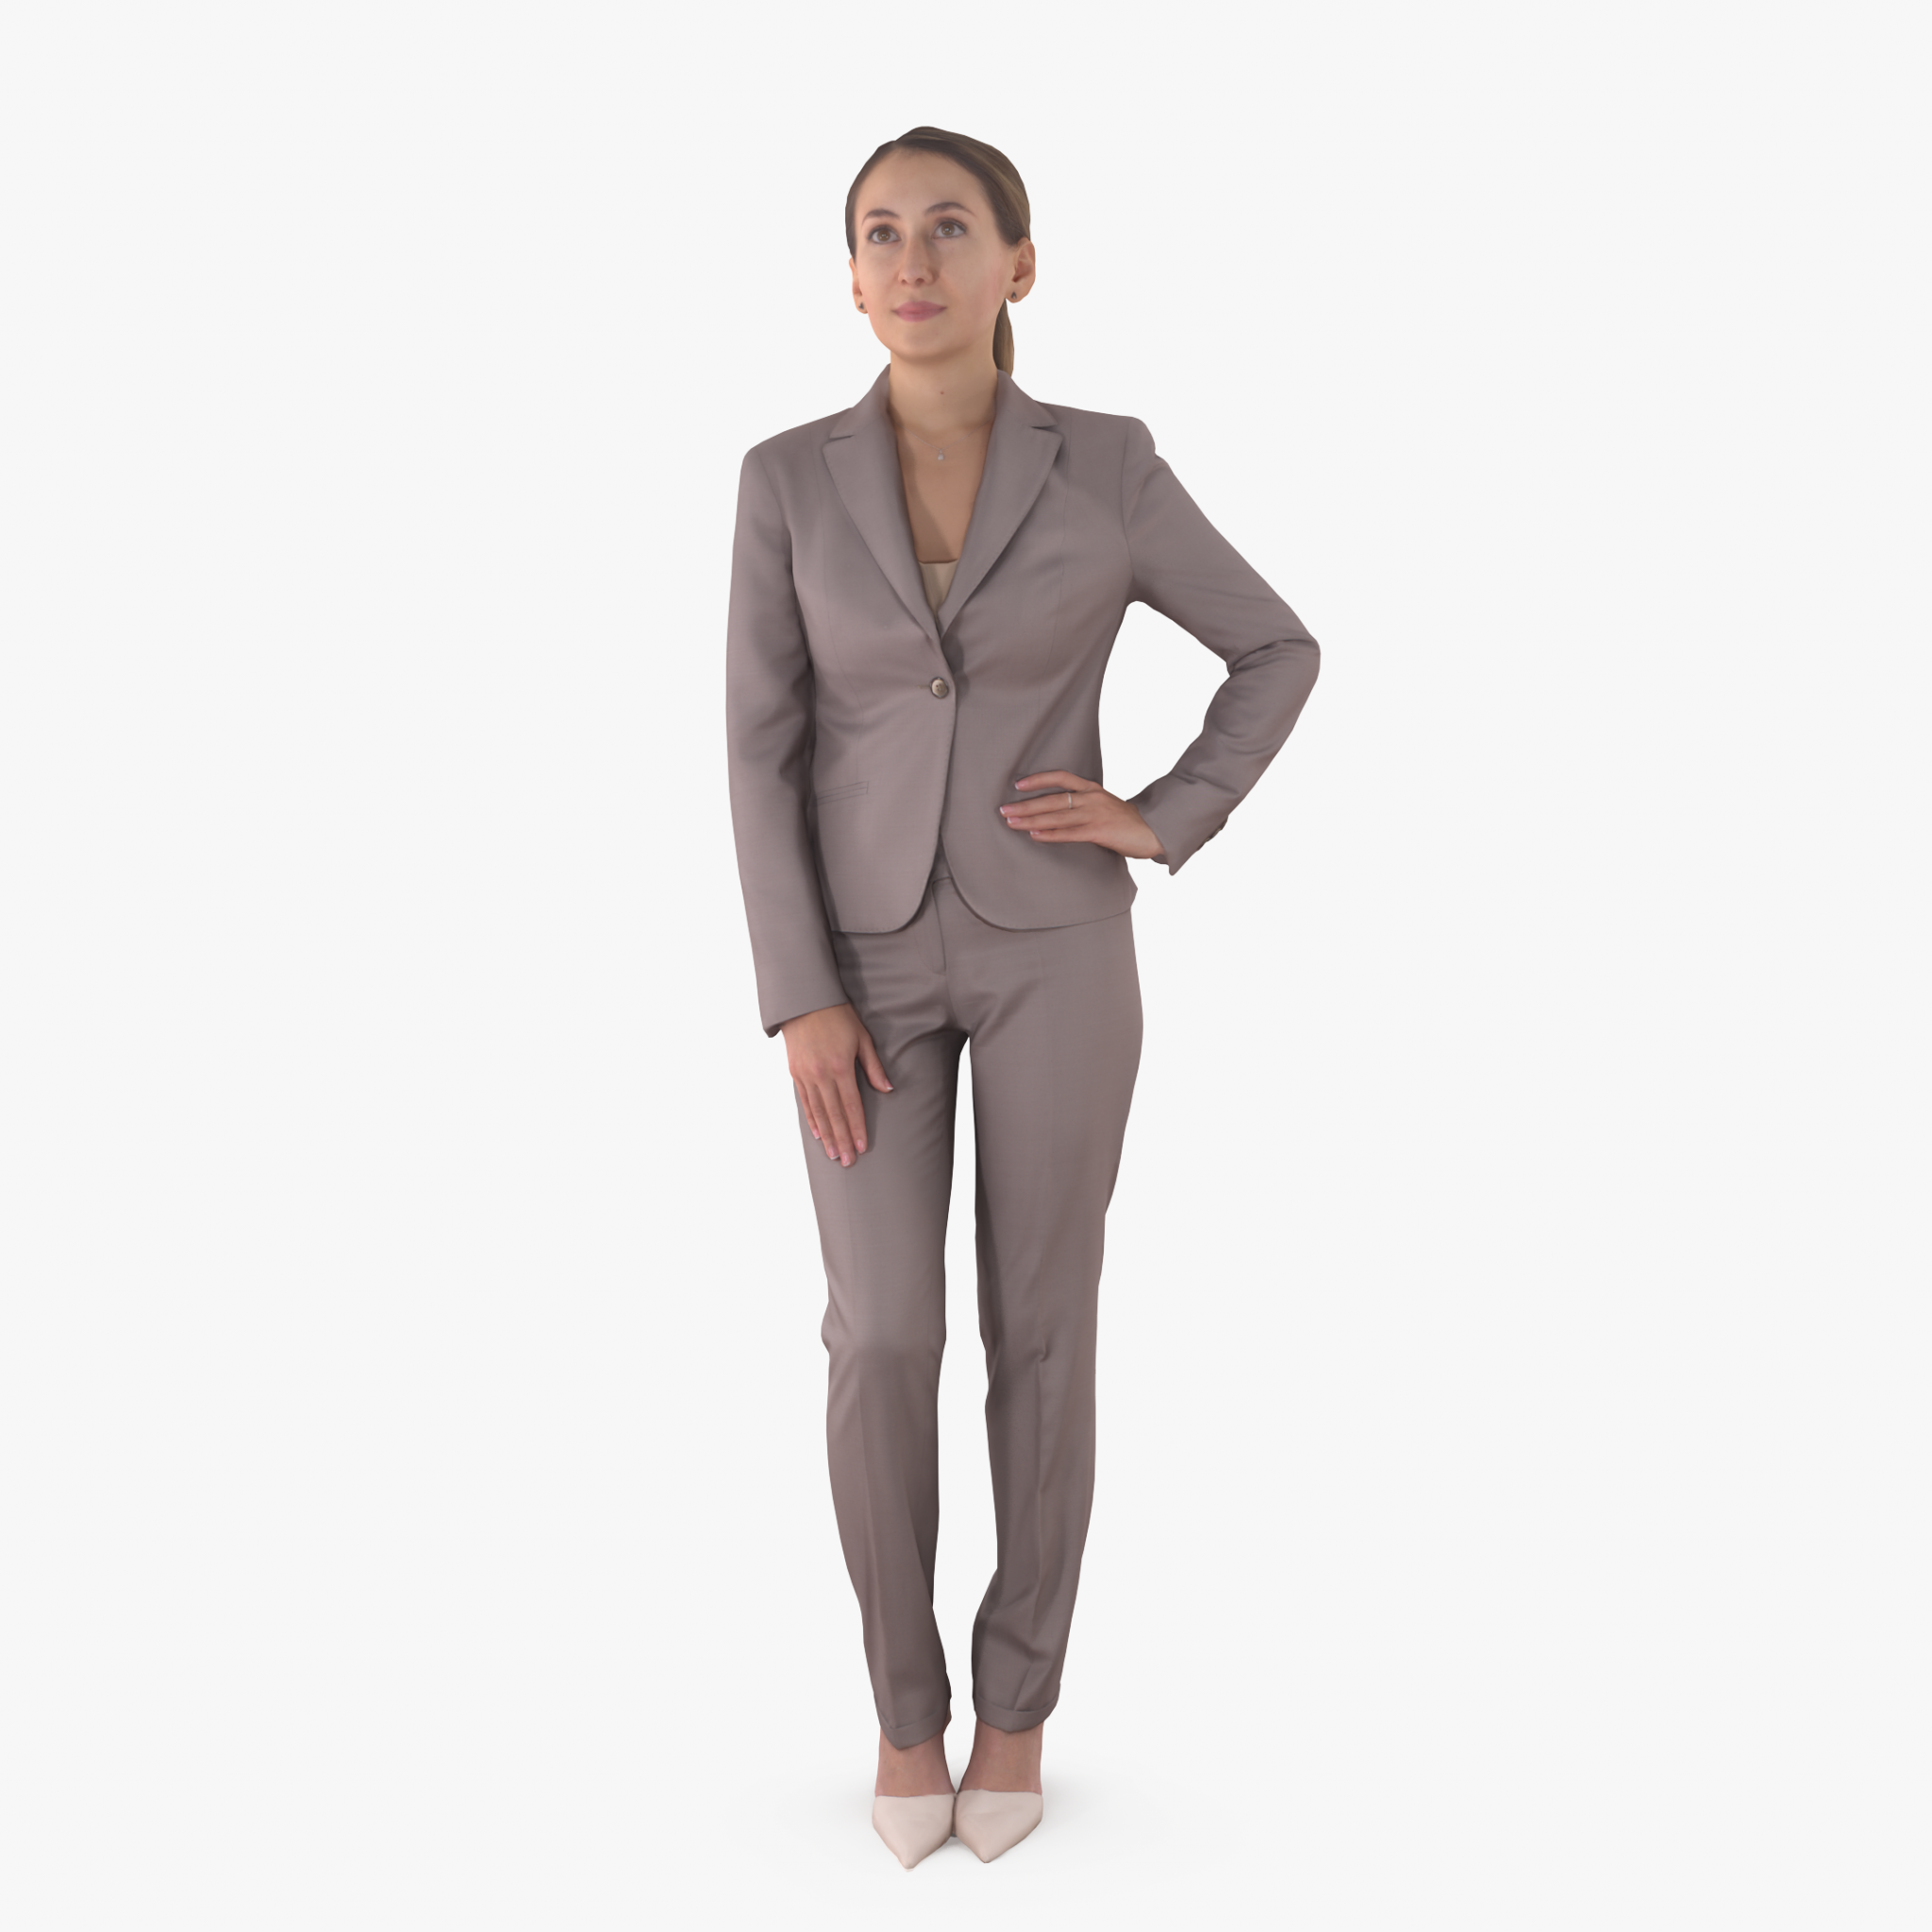 Business Woman Posing 3D Model | 3DTree Scanning Studio